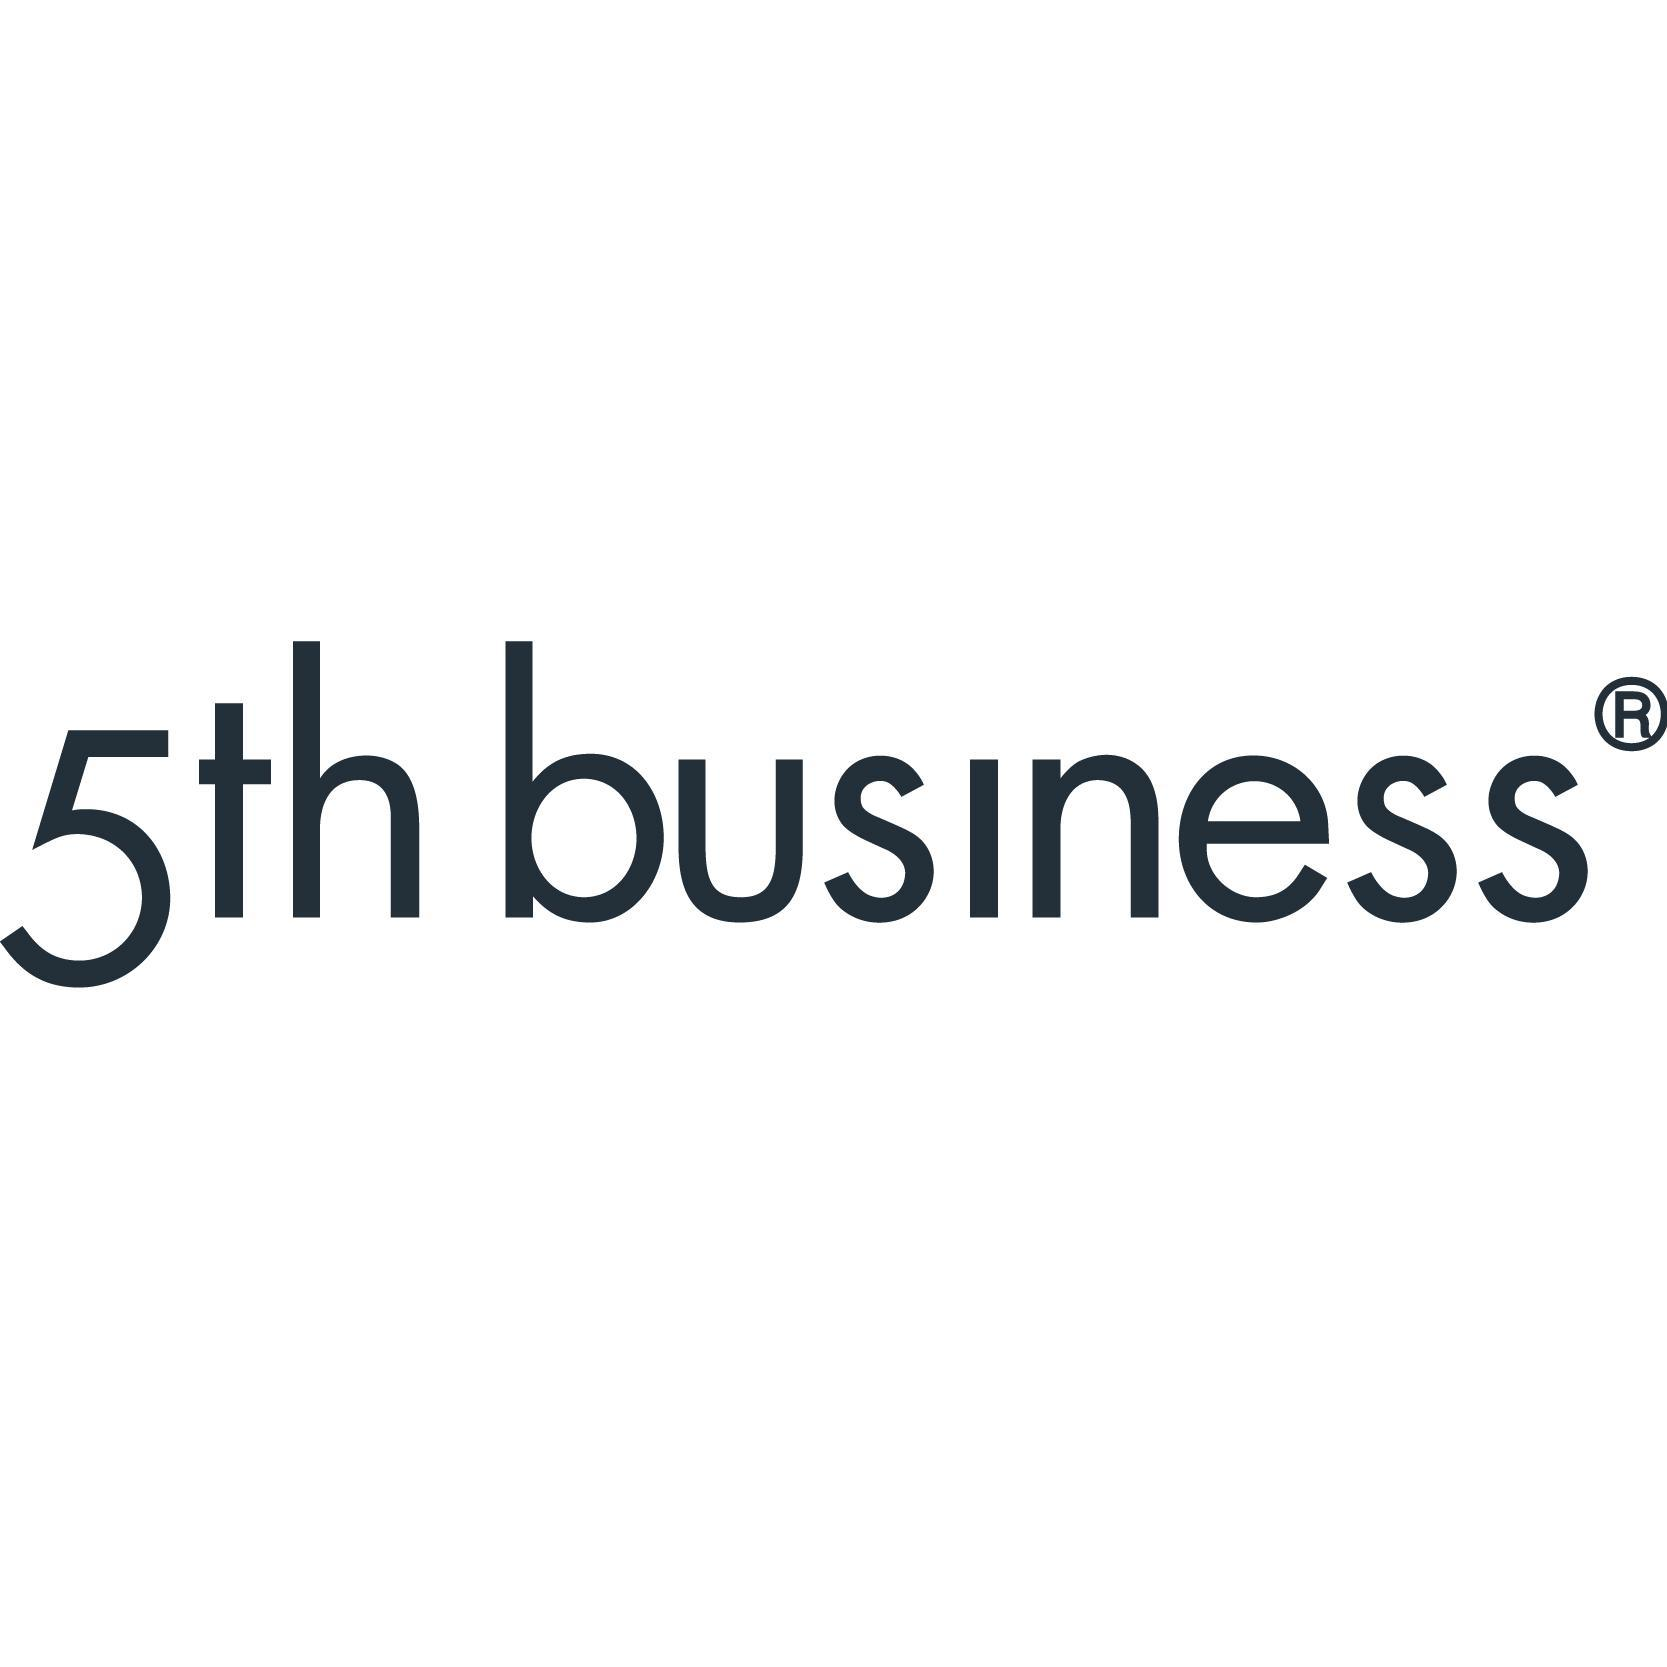 5th business 5th business is an independent curatorial collective whose objective is to  promote emerging and established artists through conceptually based  exhibitions.